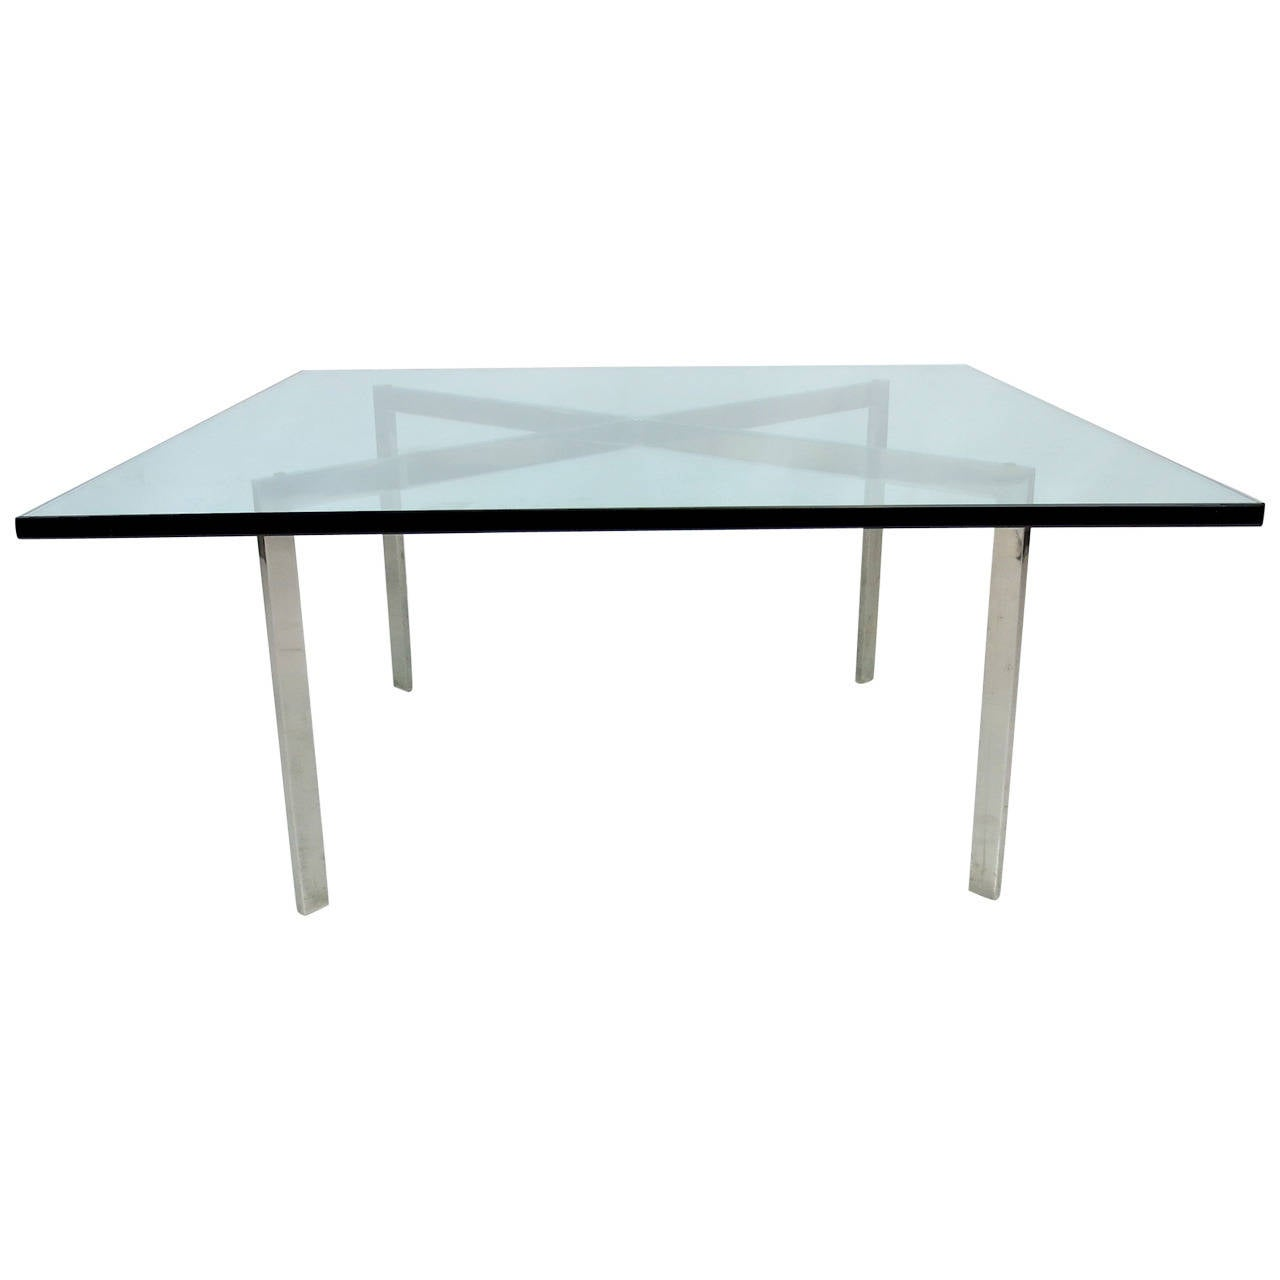 Early barcelona coffee table by mies van der rohe for knoll for sale at 1stdibs - Barcelona table knoll ...